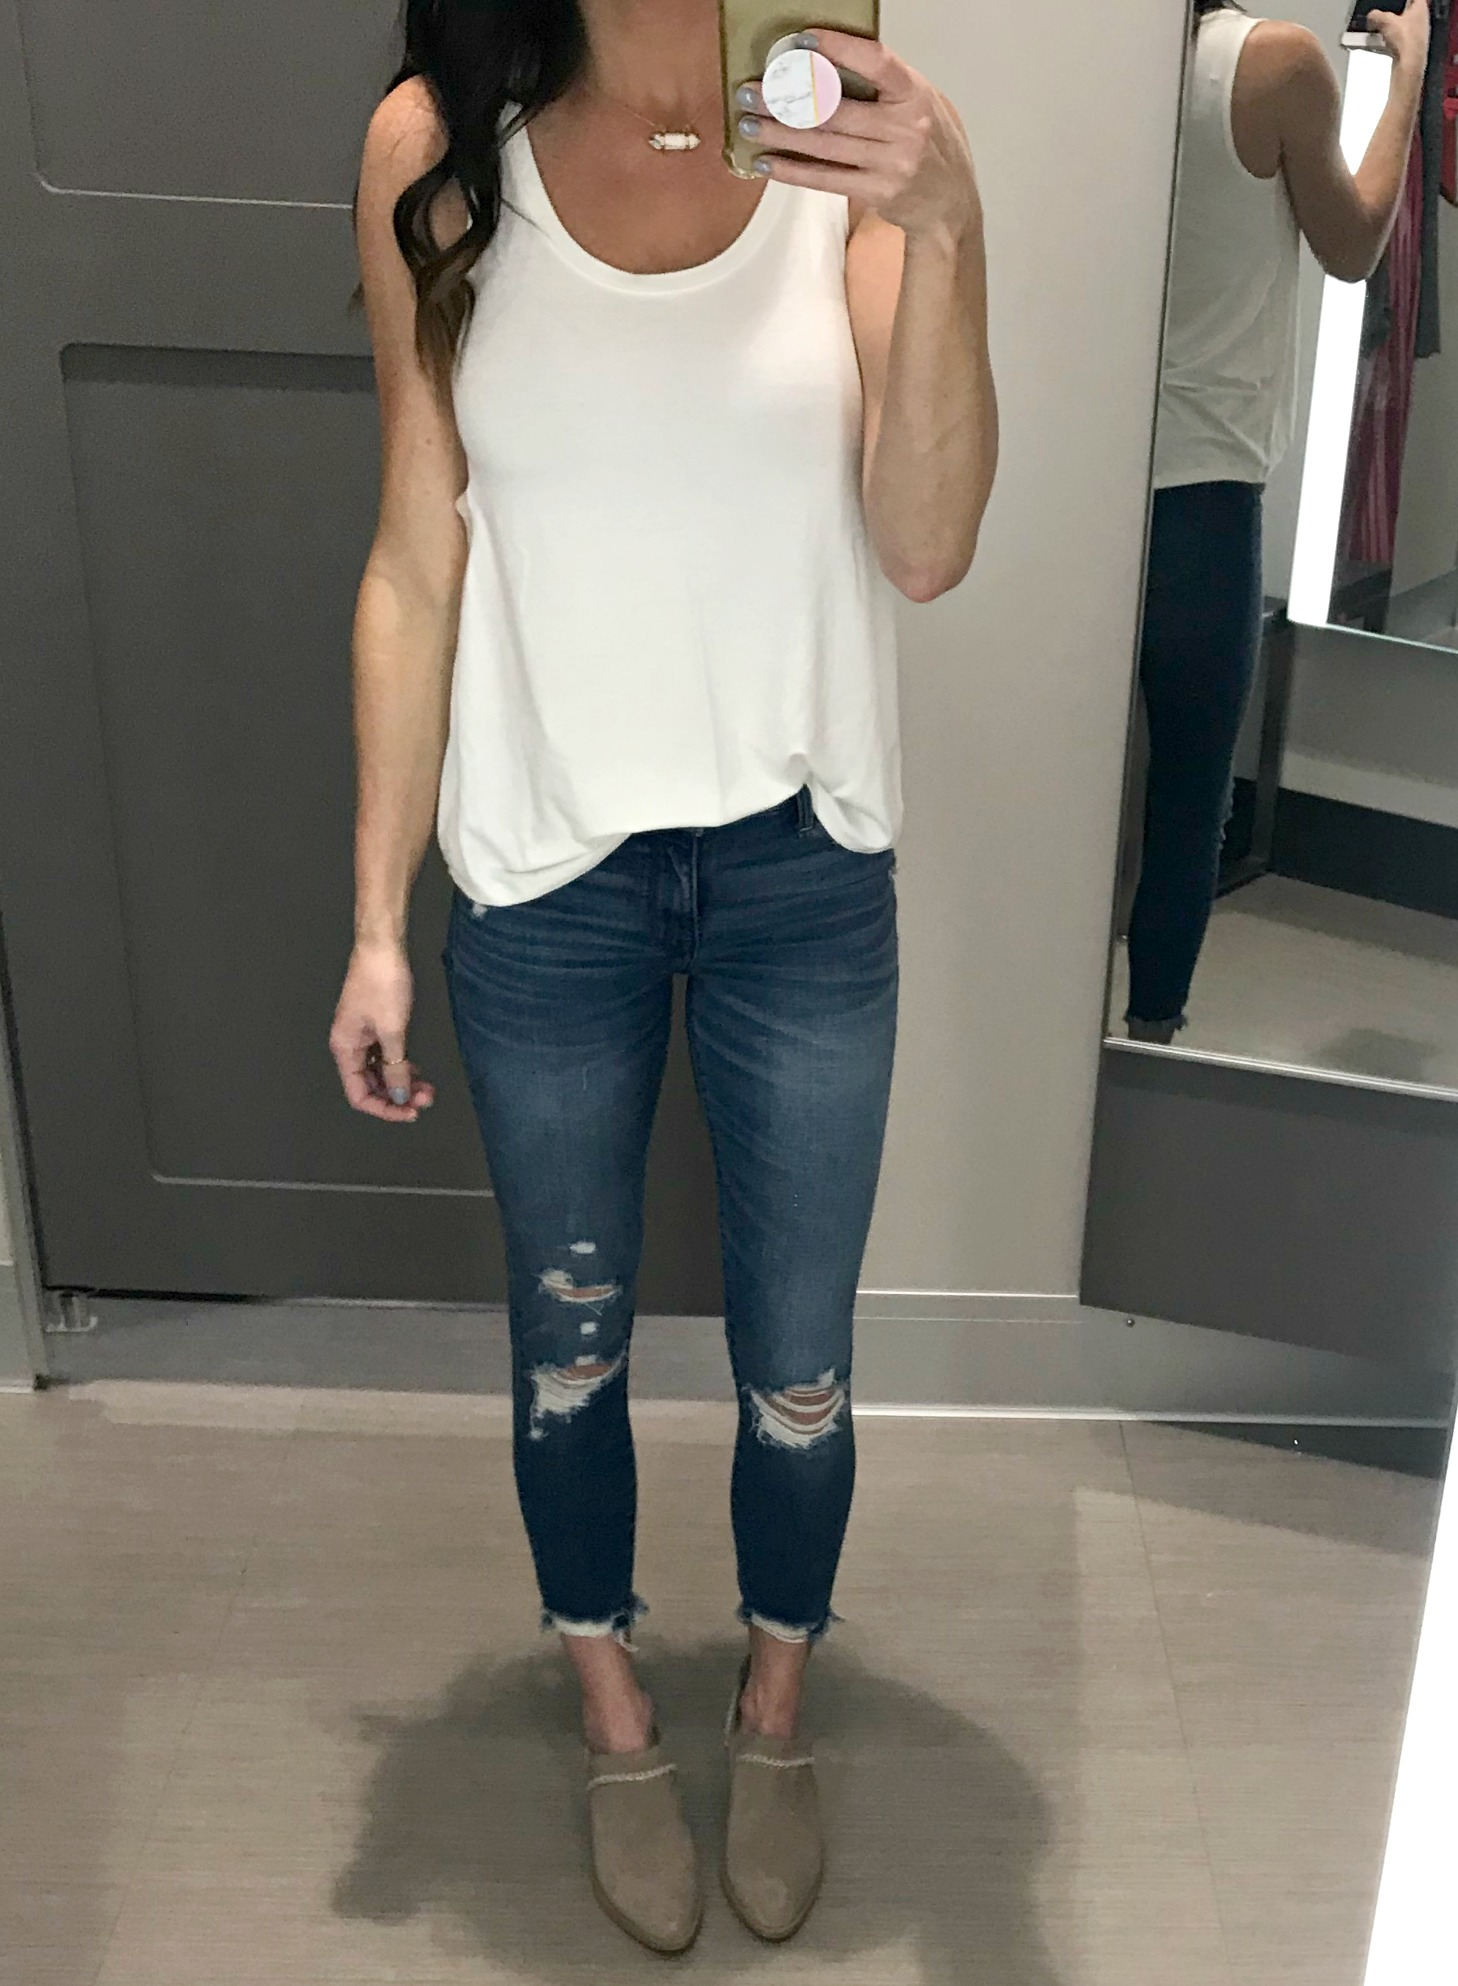 White Tank, jeans, booties